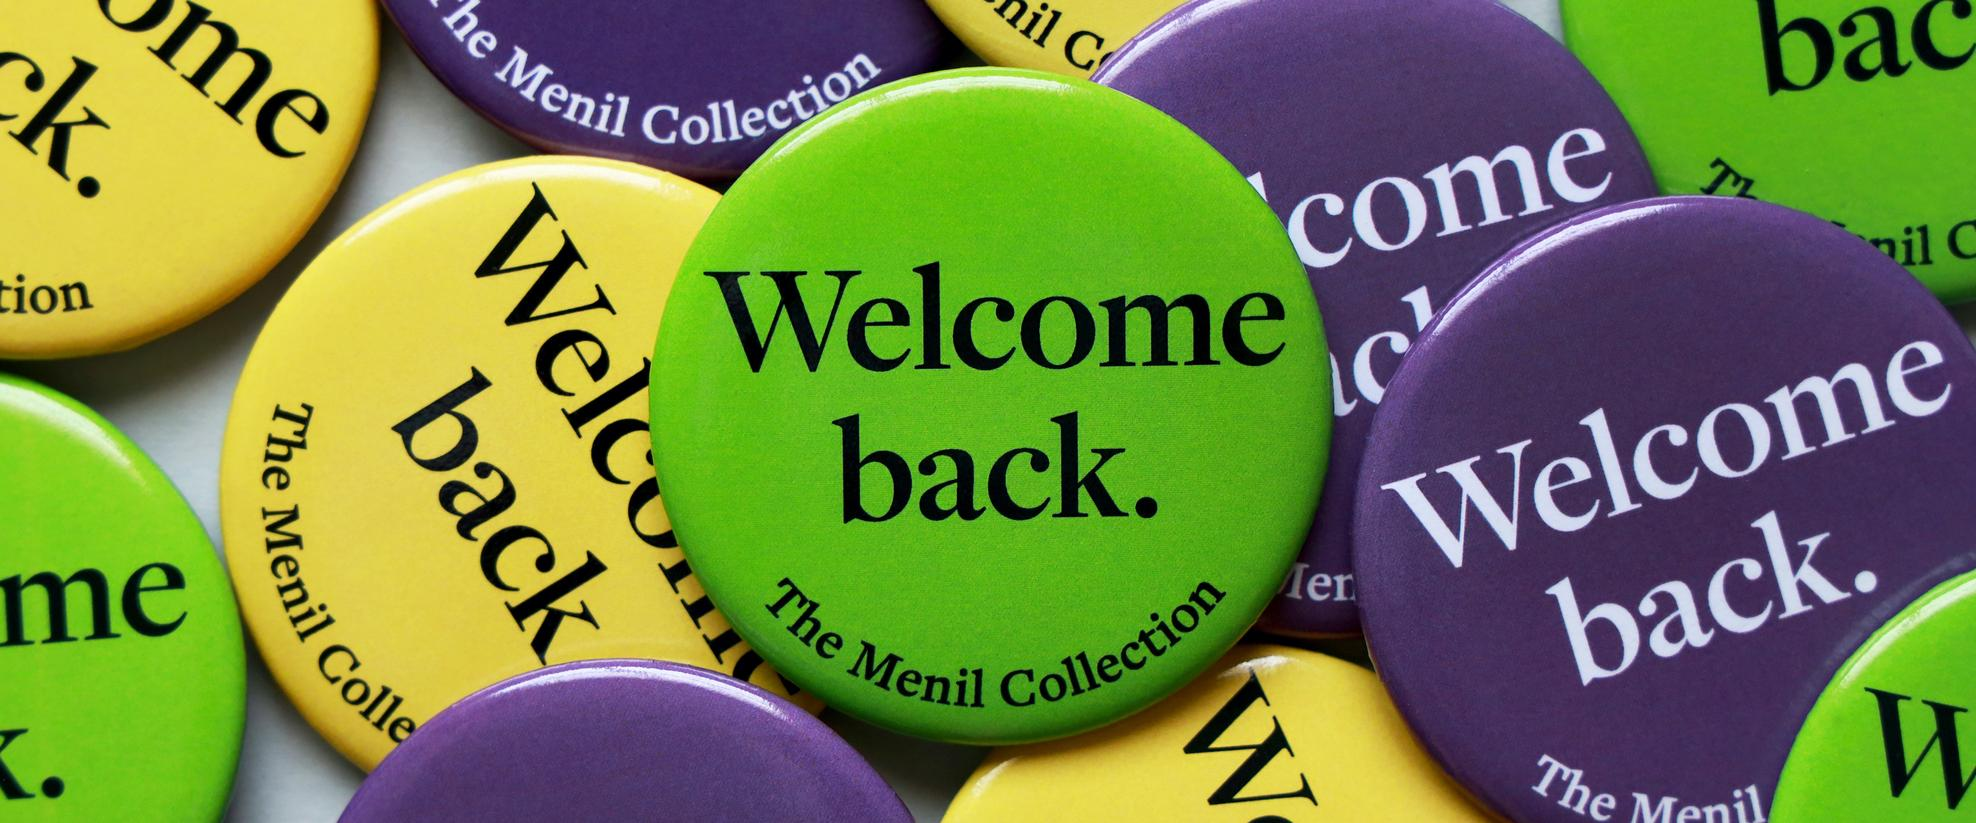 The Menil Collection welcomes back visitors, September 12, 2020.